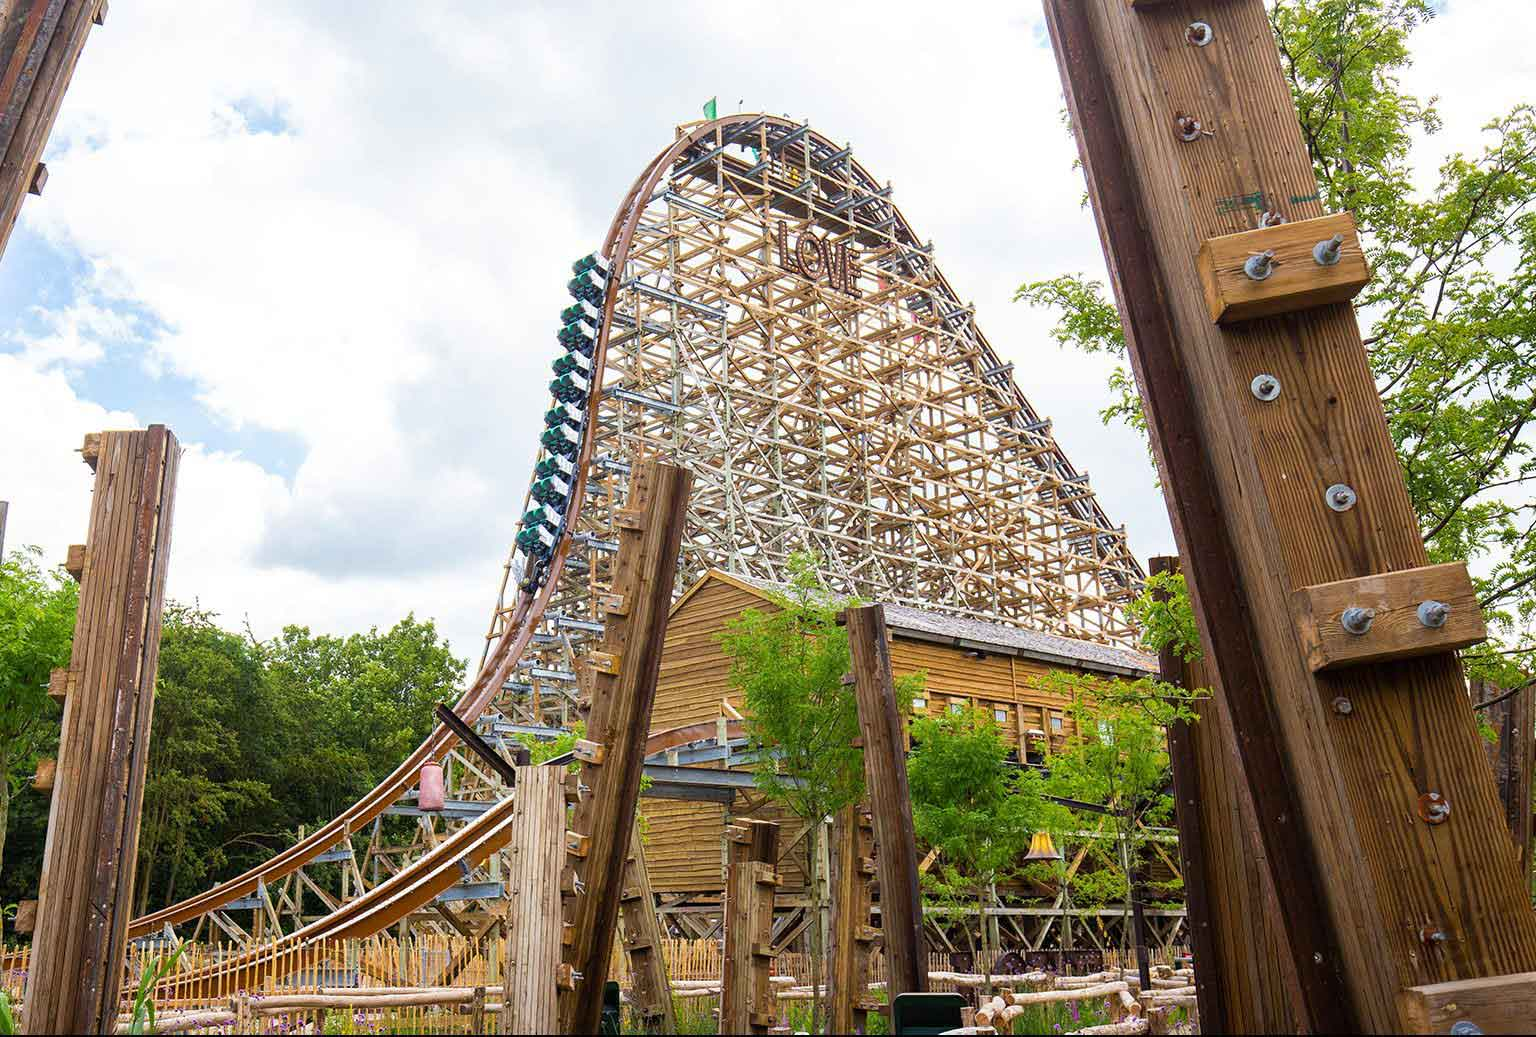 The Untamed coaster at Walibi Holland